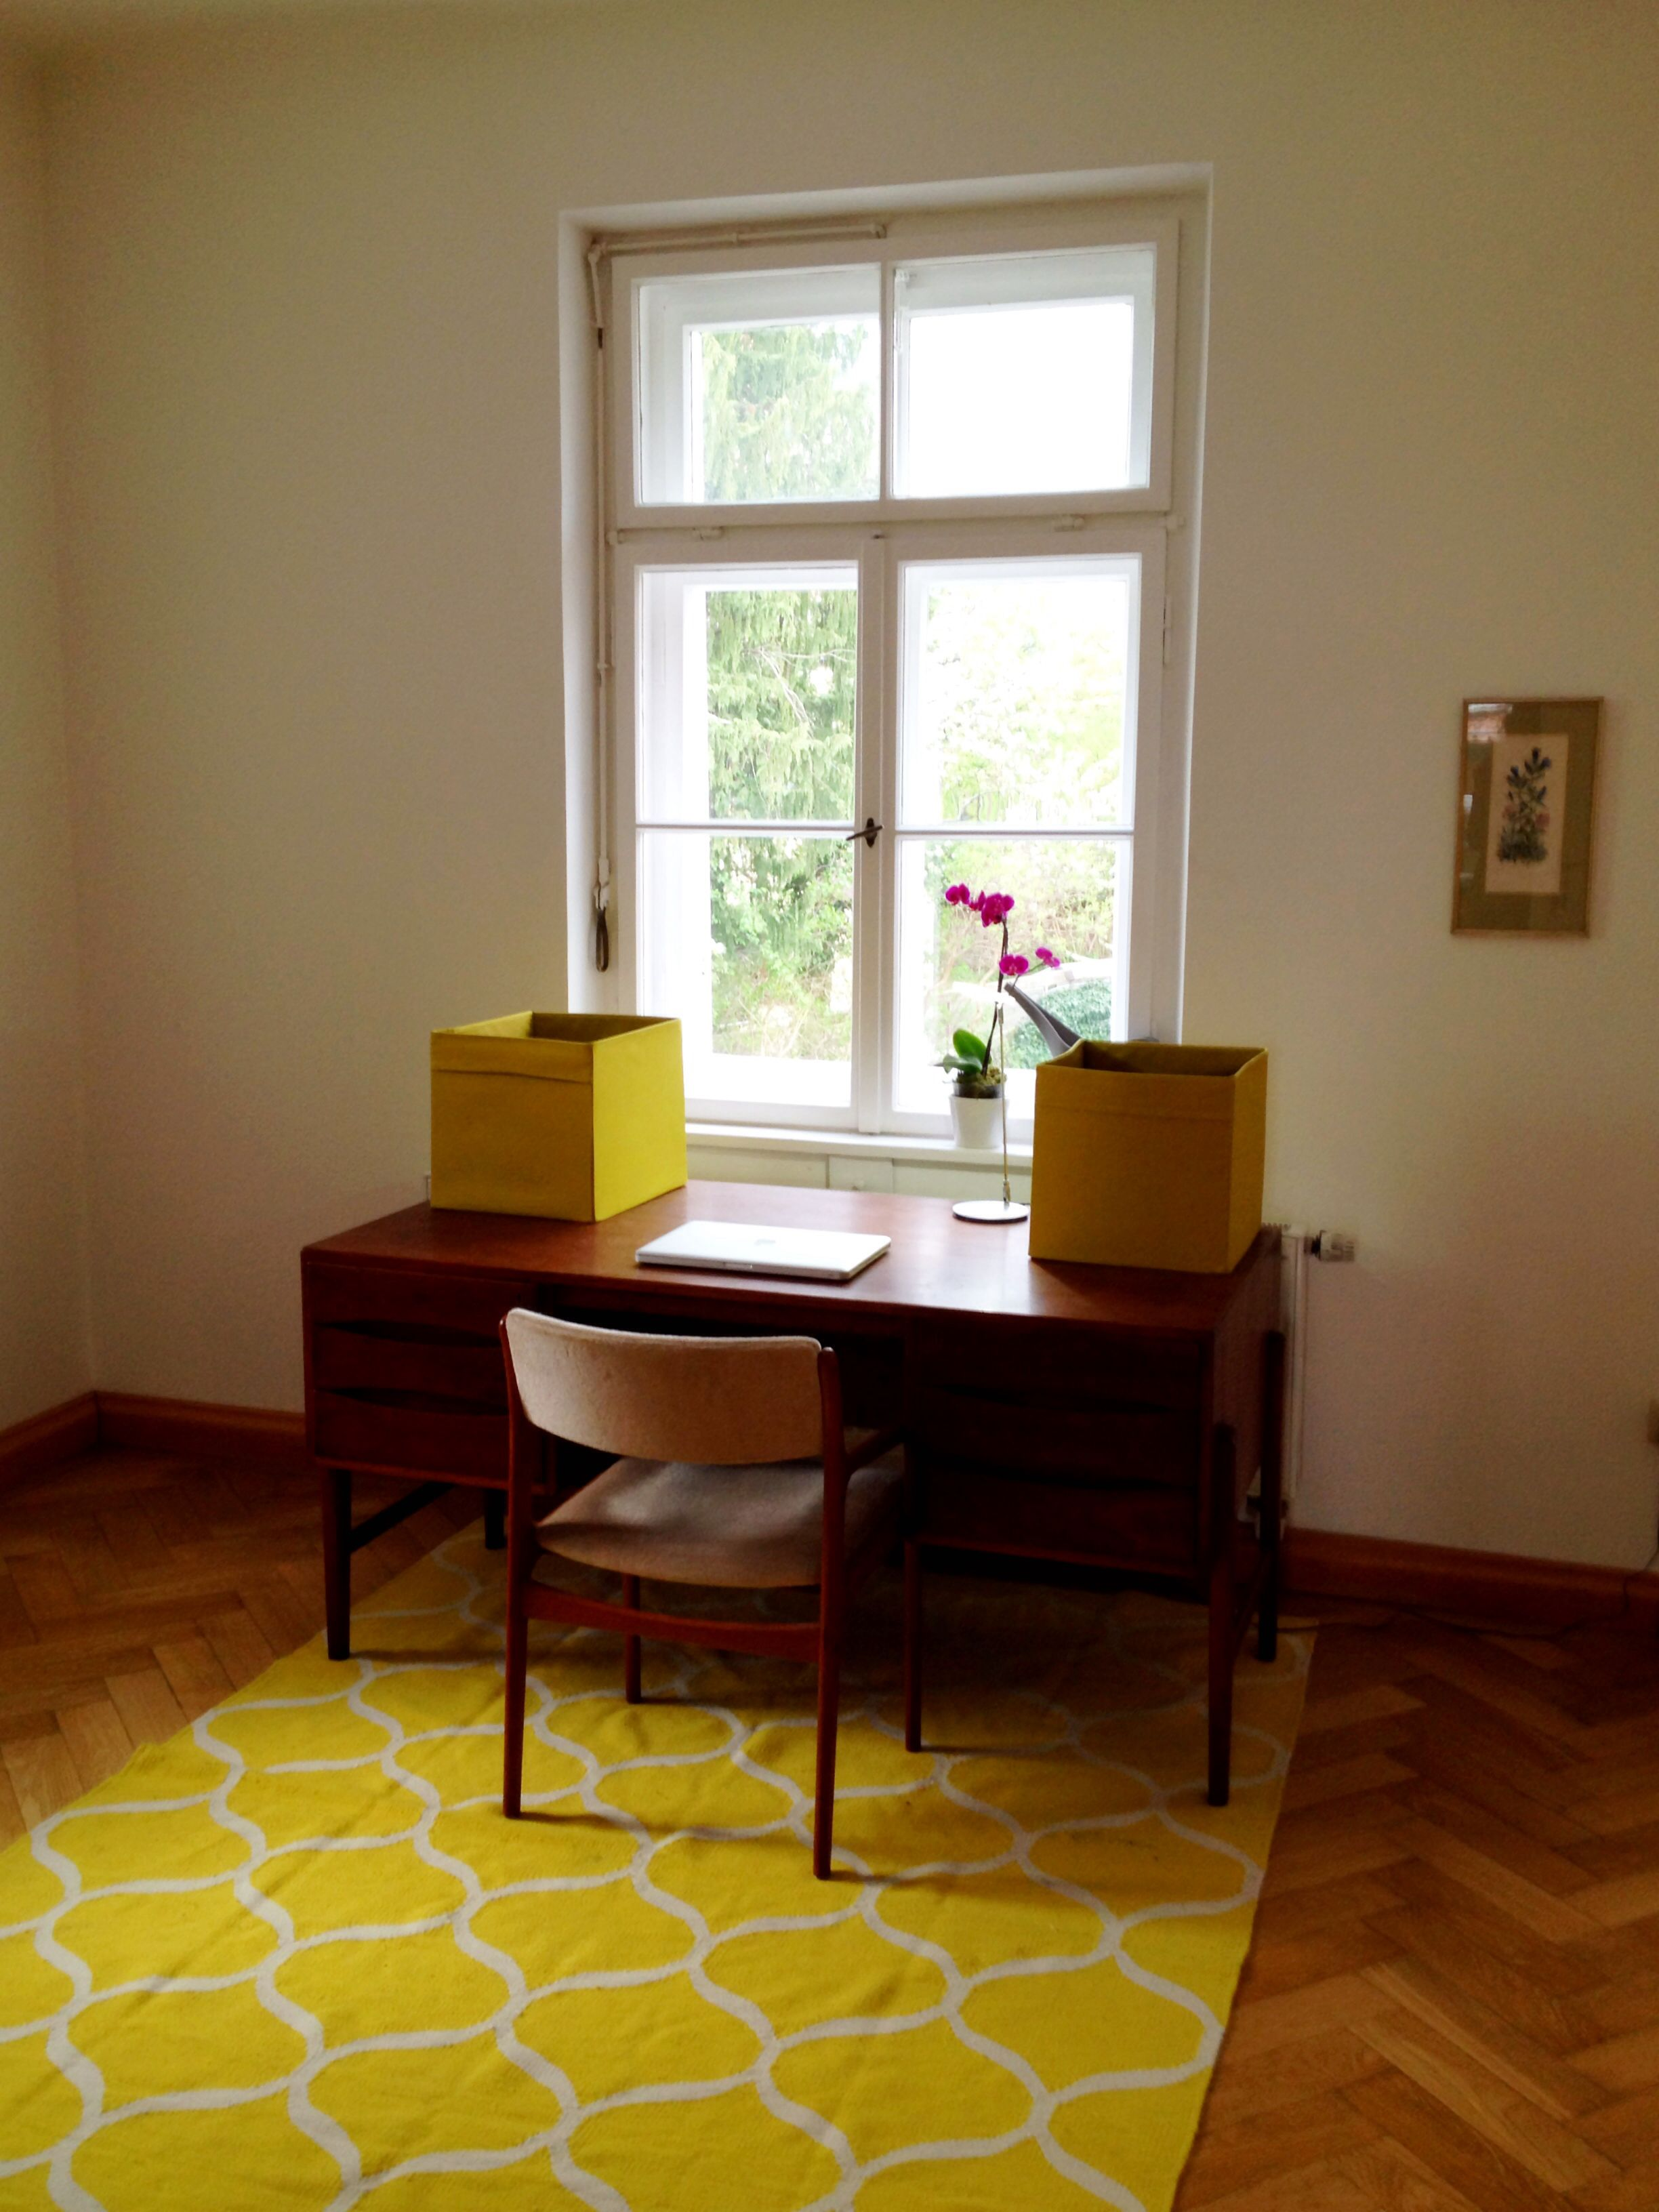 schreibtisch 60er jahre 60s ikea teppich altbau office old building retro daheim. Black Bedroom Furniture Sets. Home Design Ideas